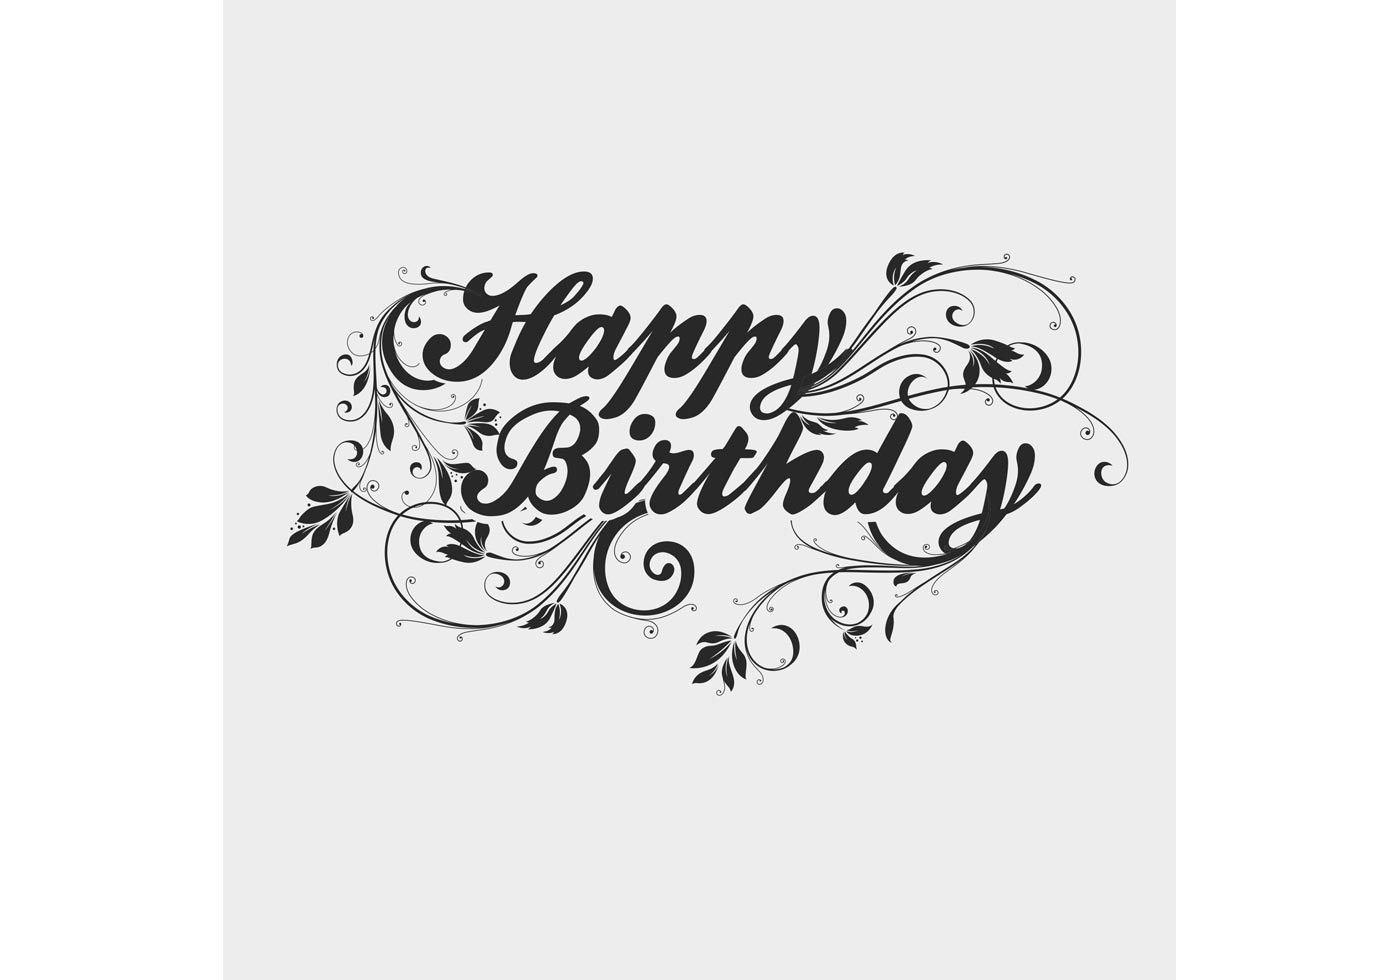 Free Vector Of The Day 196 Happy Birthday Type